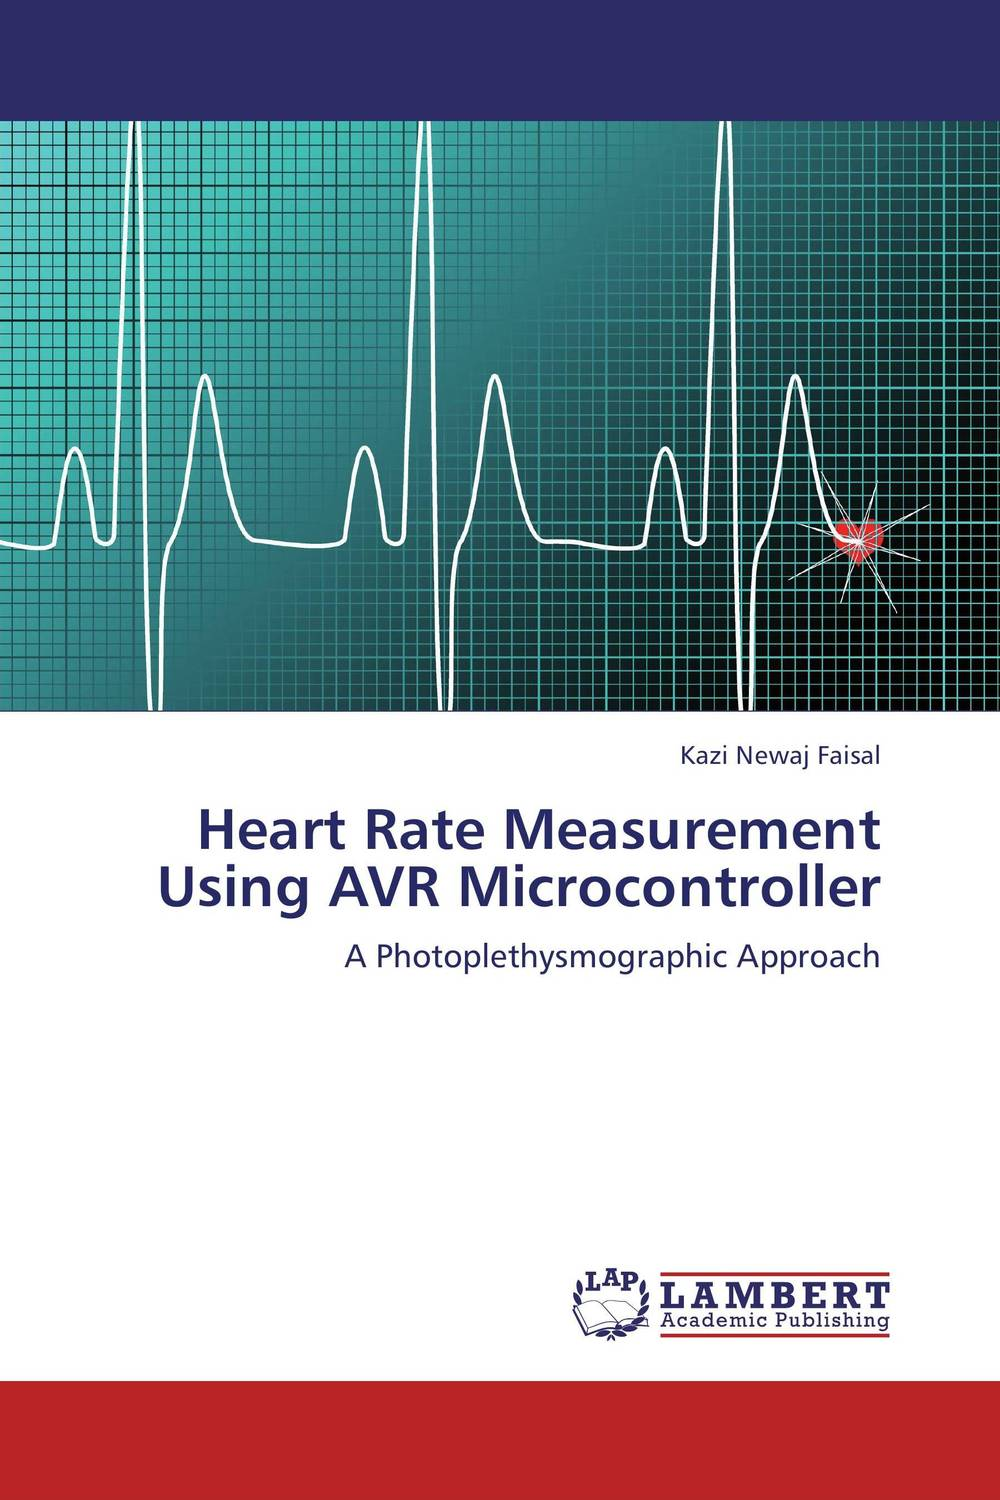 Heart Rate Measurement Using AVR Microcontroller bodies the whole blood pumping story